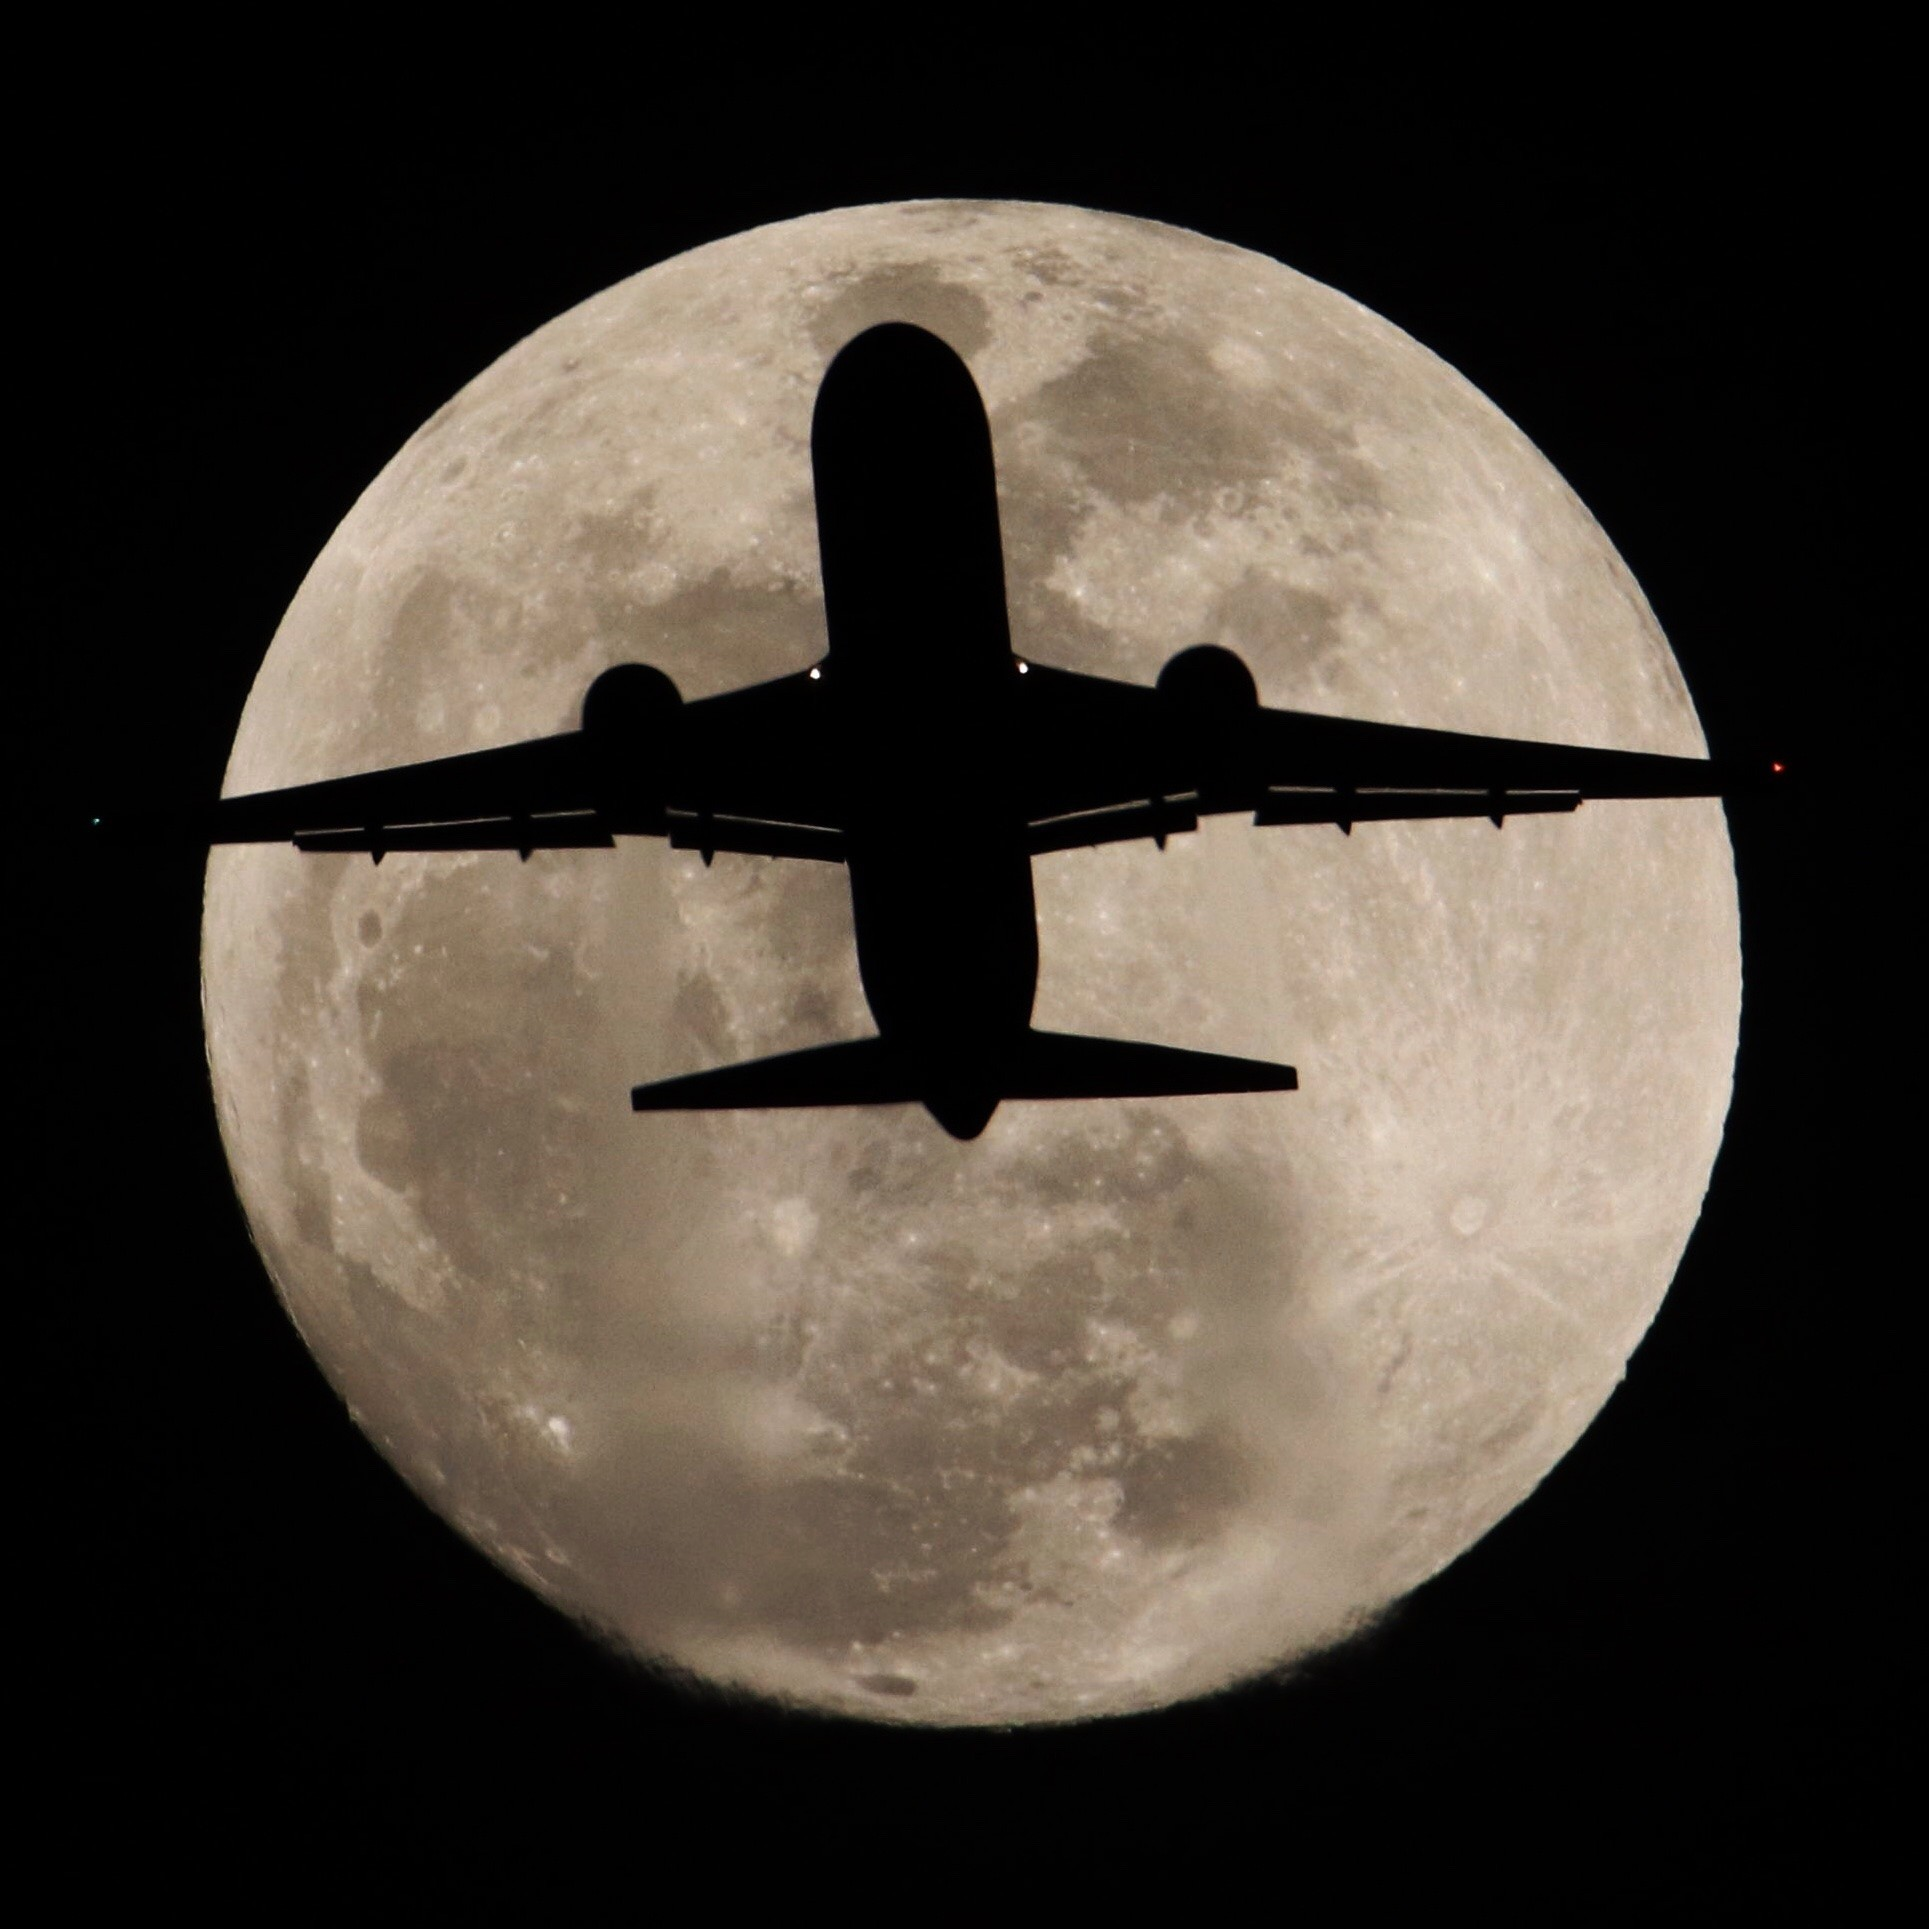 Jan. 30, 2018: Airliner crosses in front of full moon over Whittier, California, Tuesday evening. Th